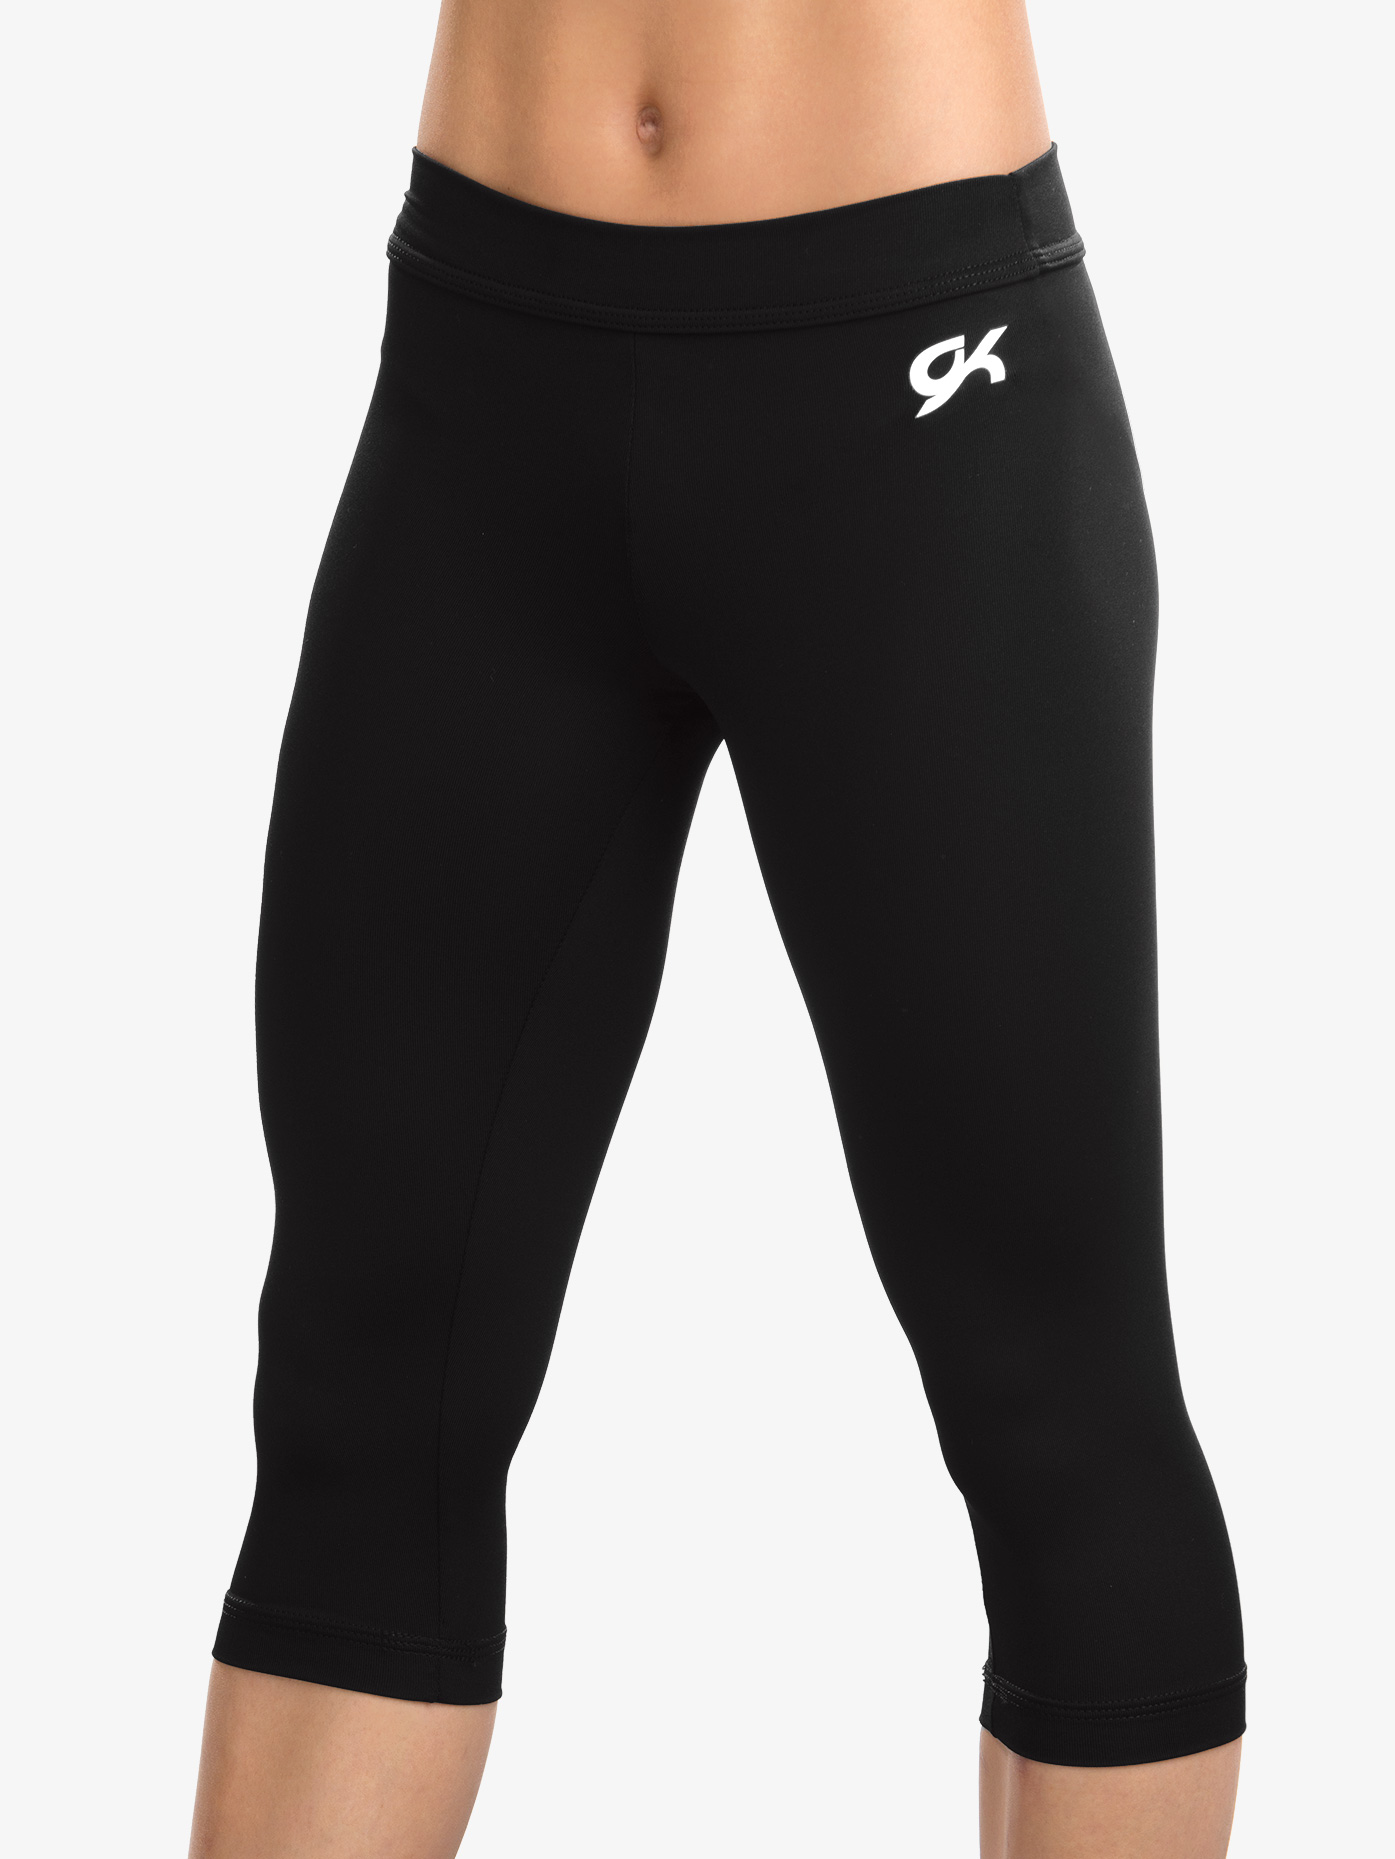 GK Elite Girls DryTech Capri Leggings E2259C